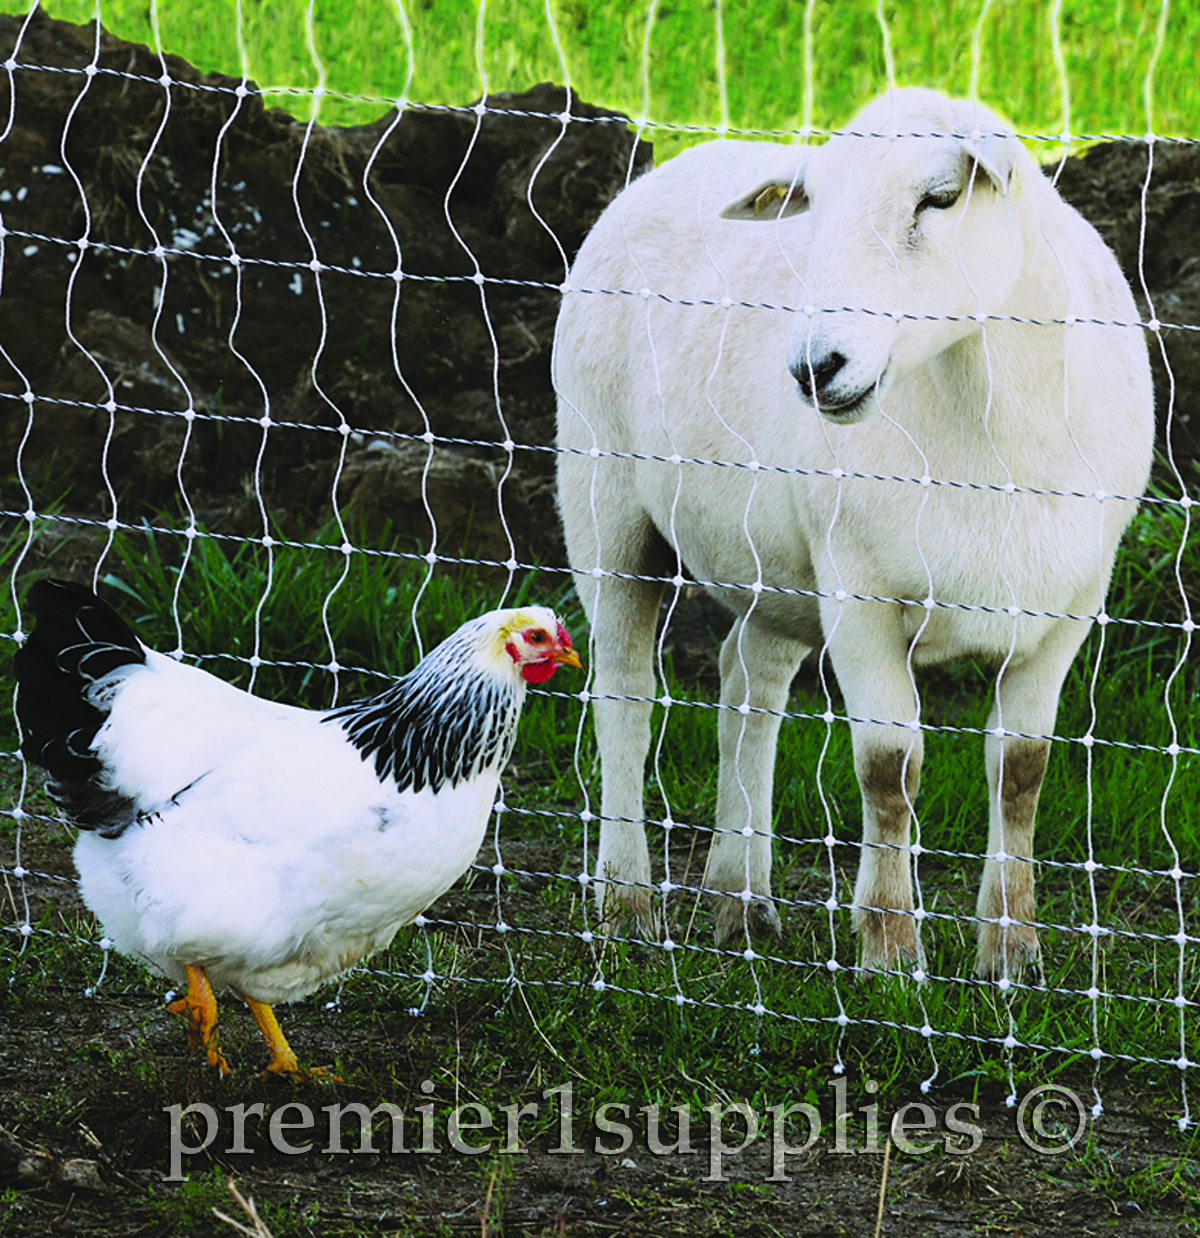 Premier Farm Diary: Before you build a fence…